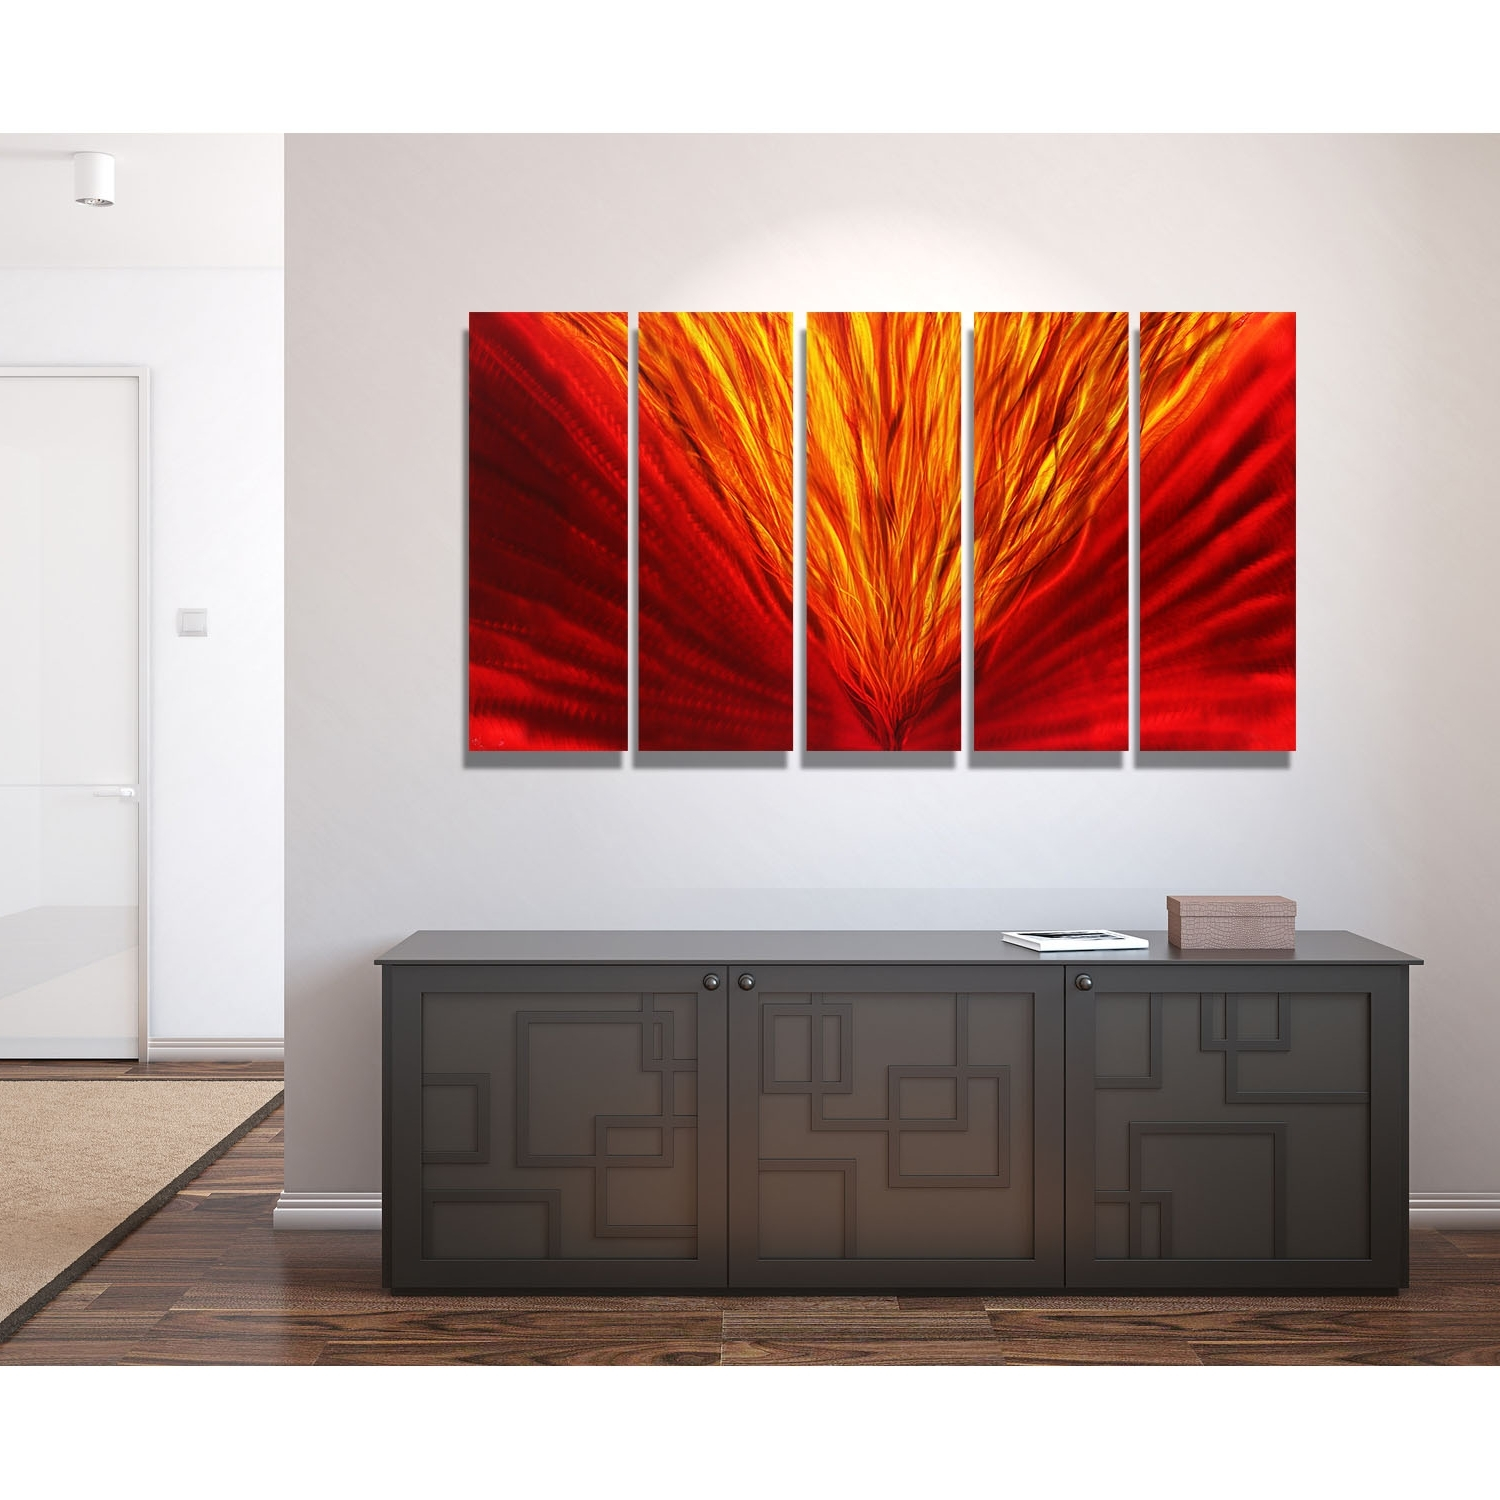 Famous Blaze – Red And Gold Metal Wall Art – 5 Panel Wall Decorjon Within 5 Panel Wall Art (View 10 of 15)